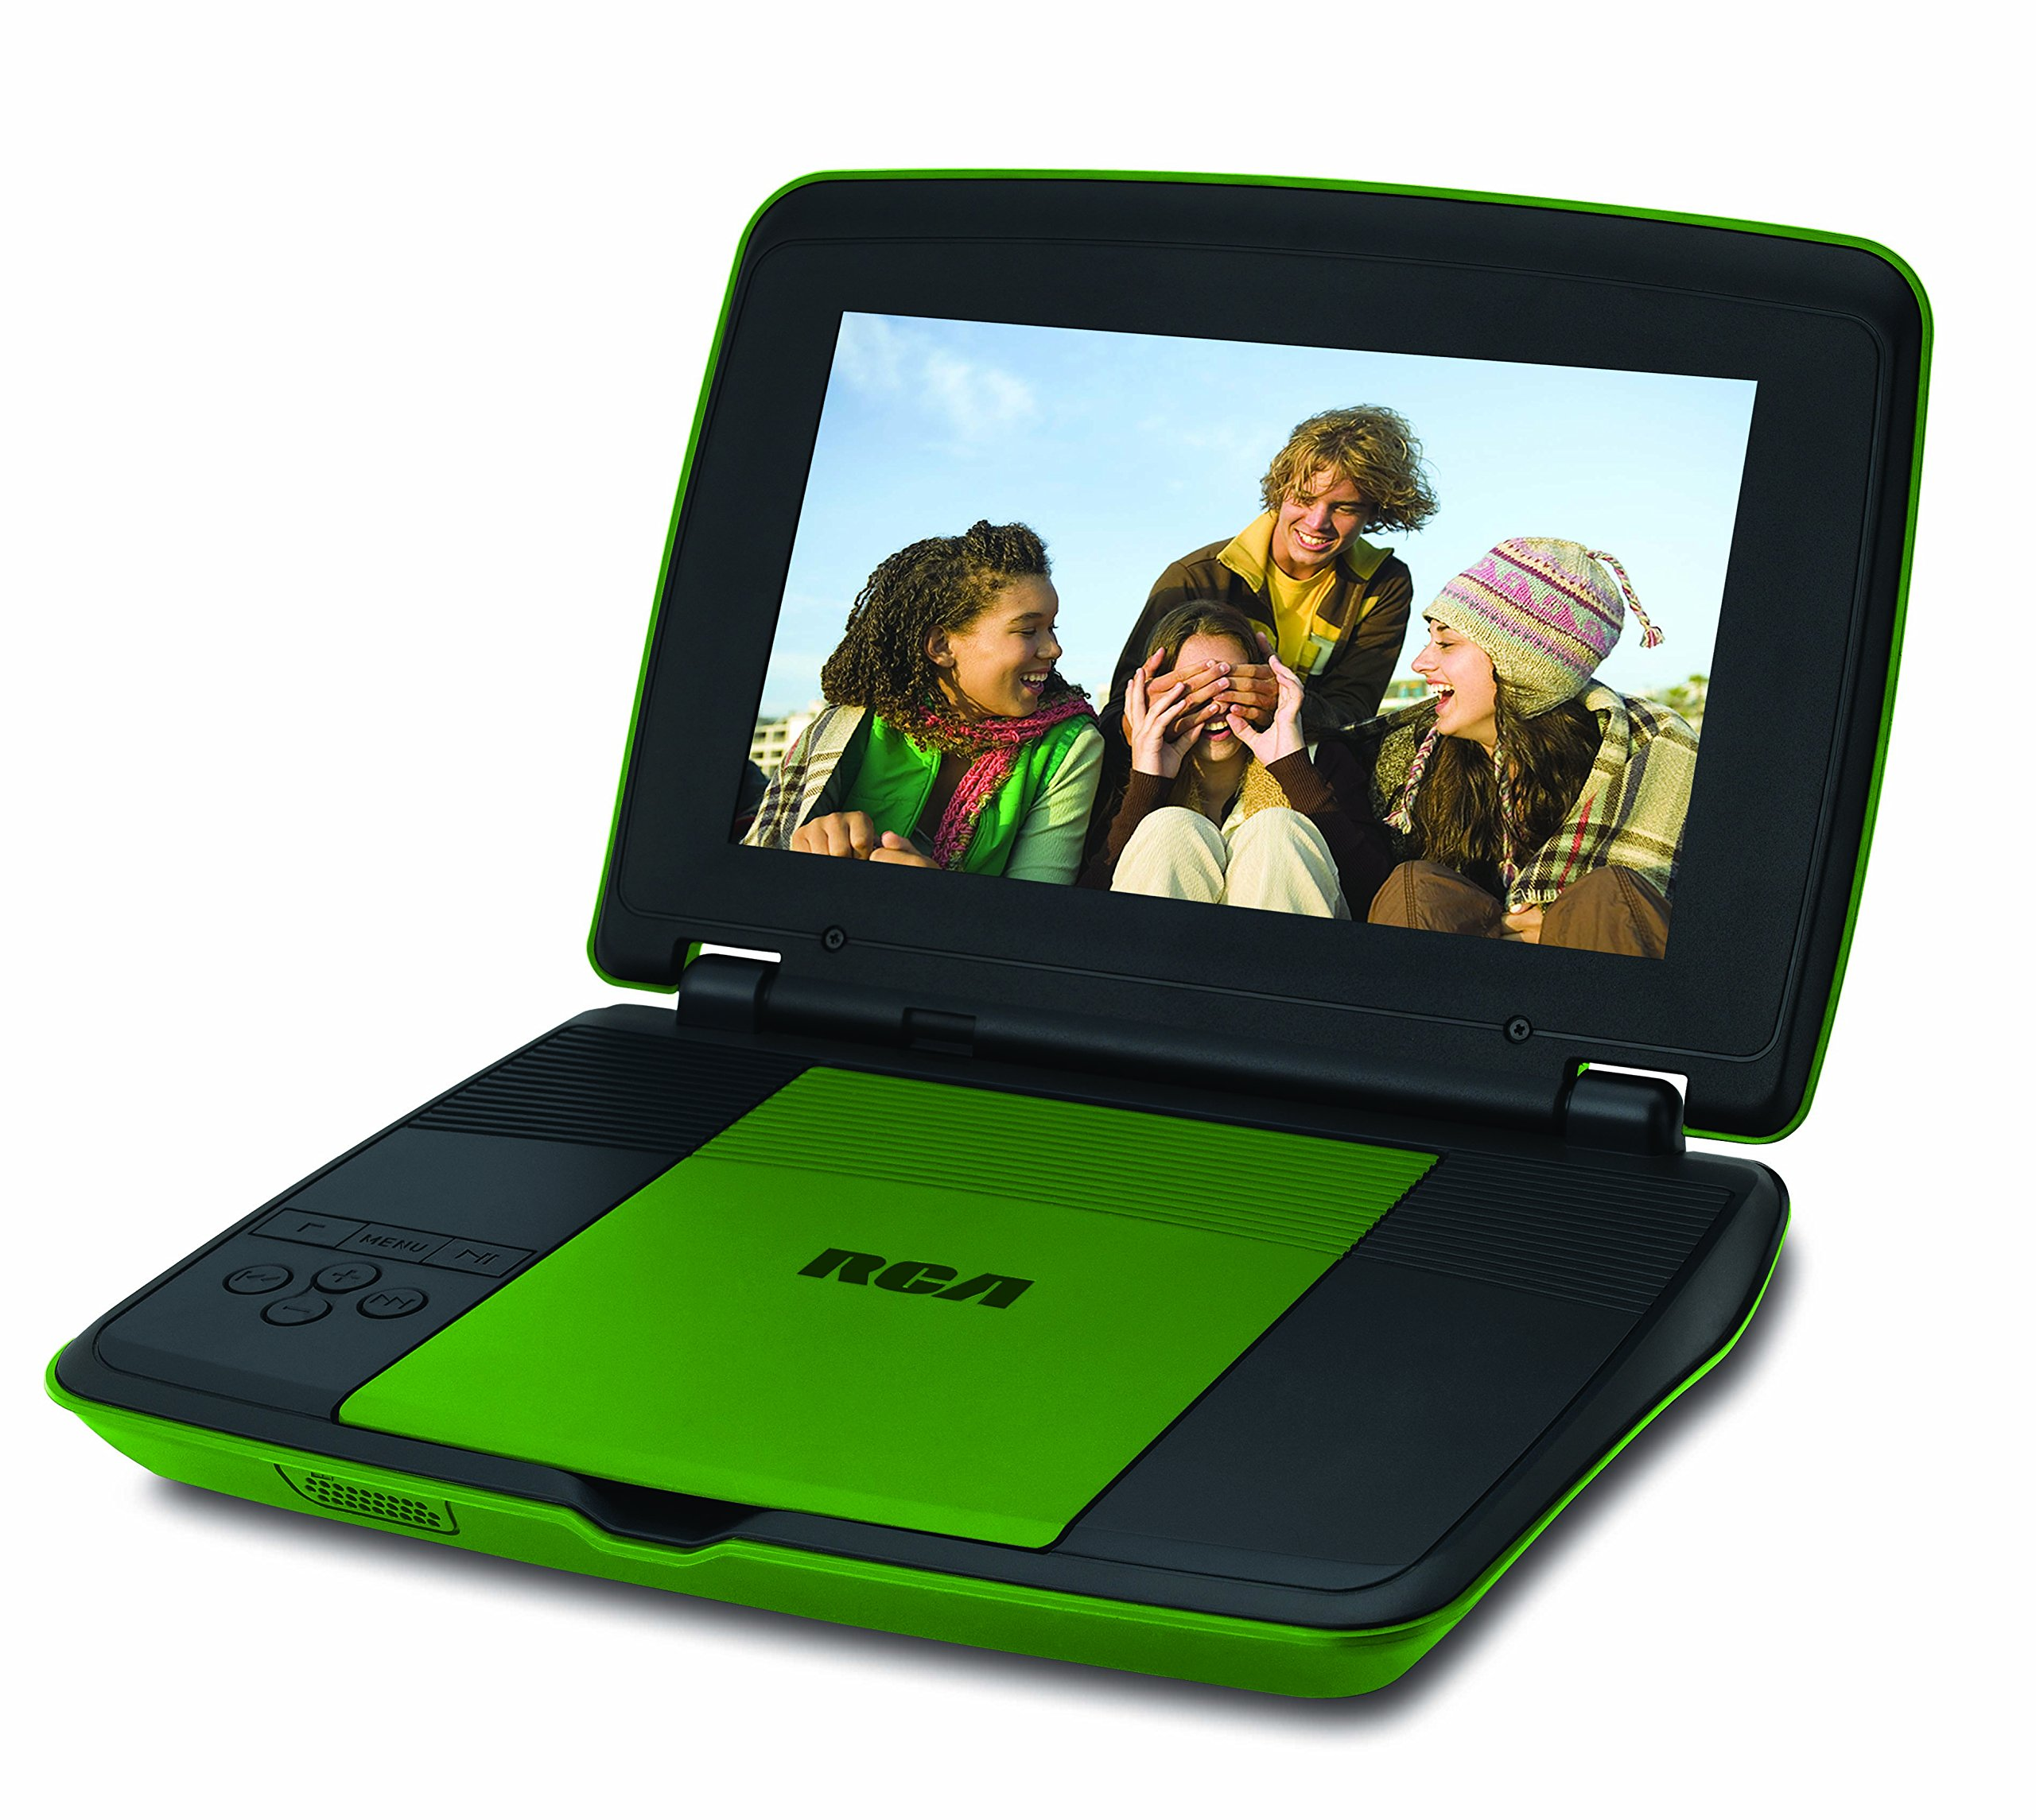 RCA 9 Inch Portable DVD CD Player with Travel Kit Watching in a Car Remote Control | Rechargeable Battery | AC Adapter | Car Charger, Green by RCA